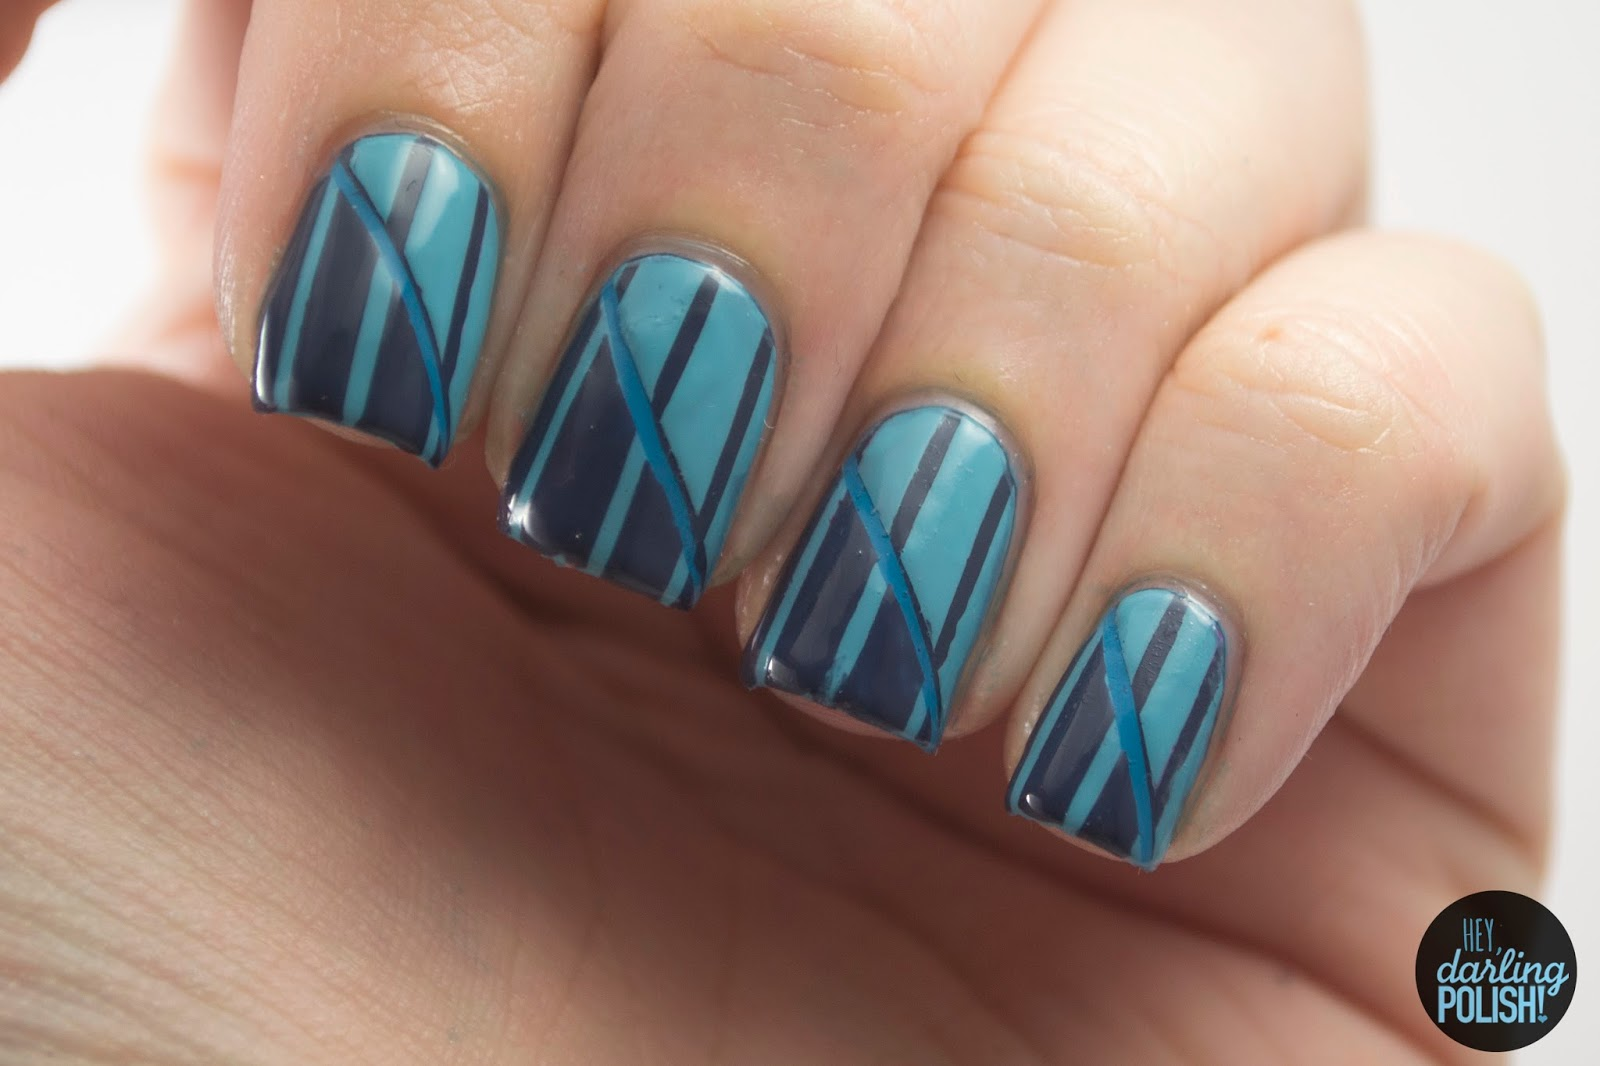 nails, nail art, nail polish, polish, stripes, blue, hey darling polish, theme buffet, monochrome